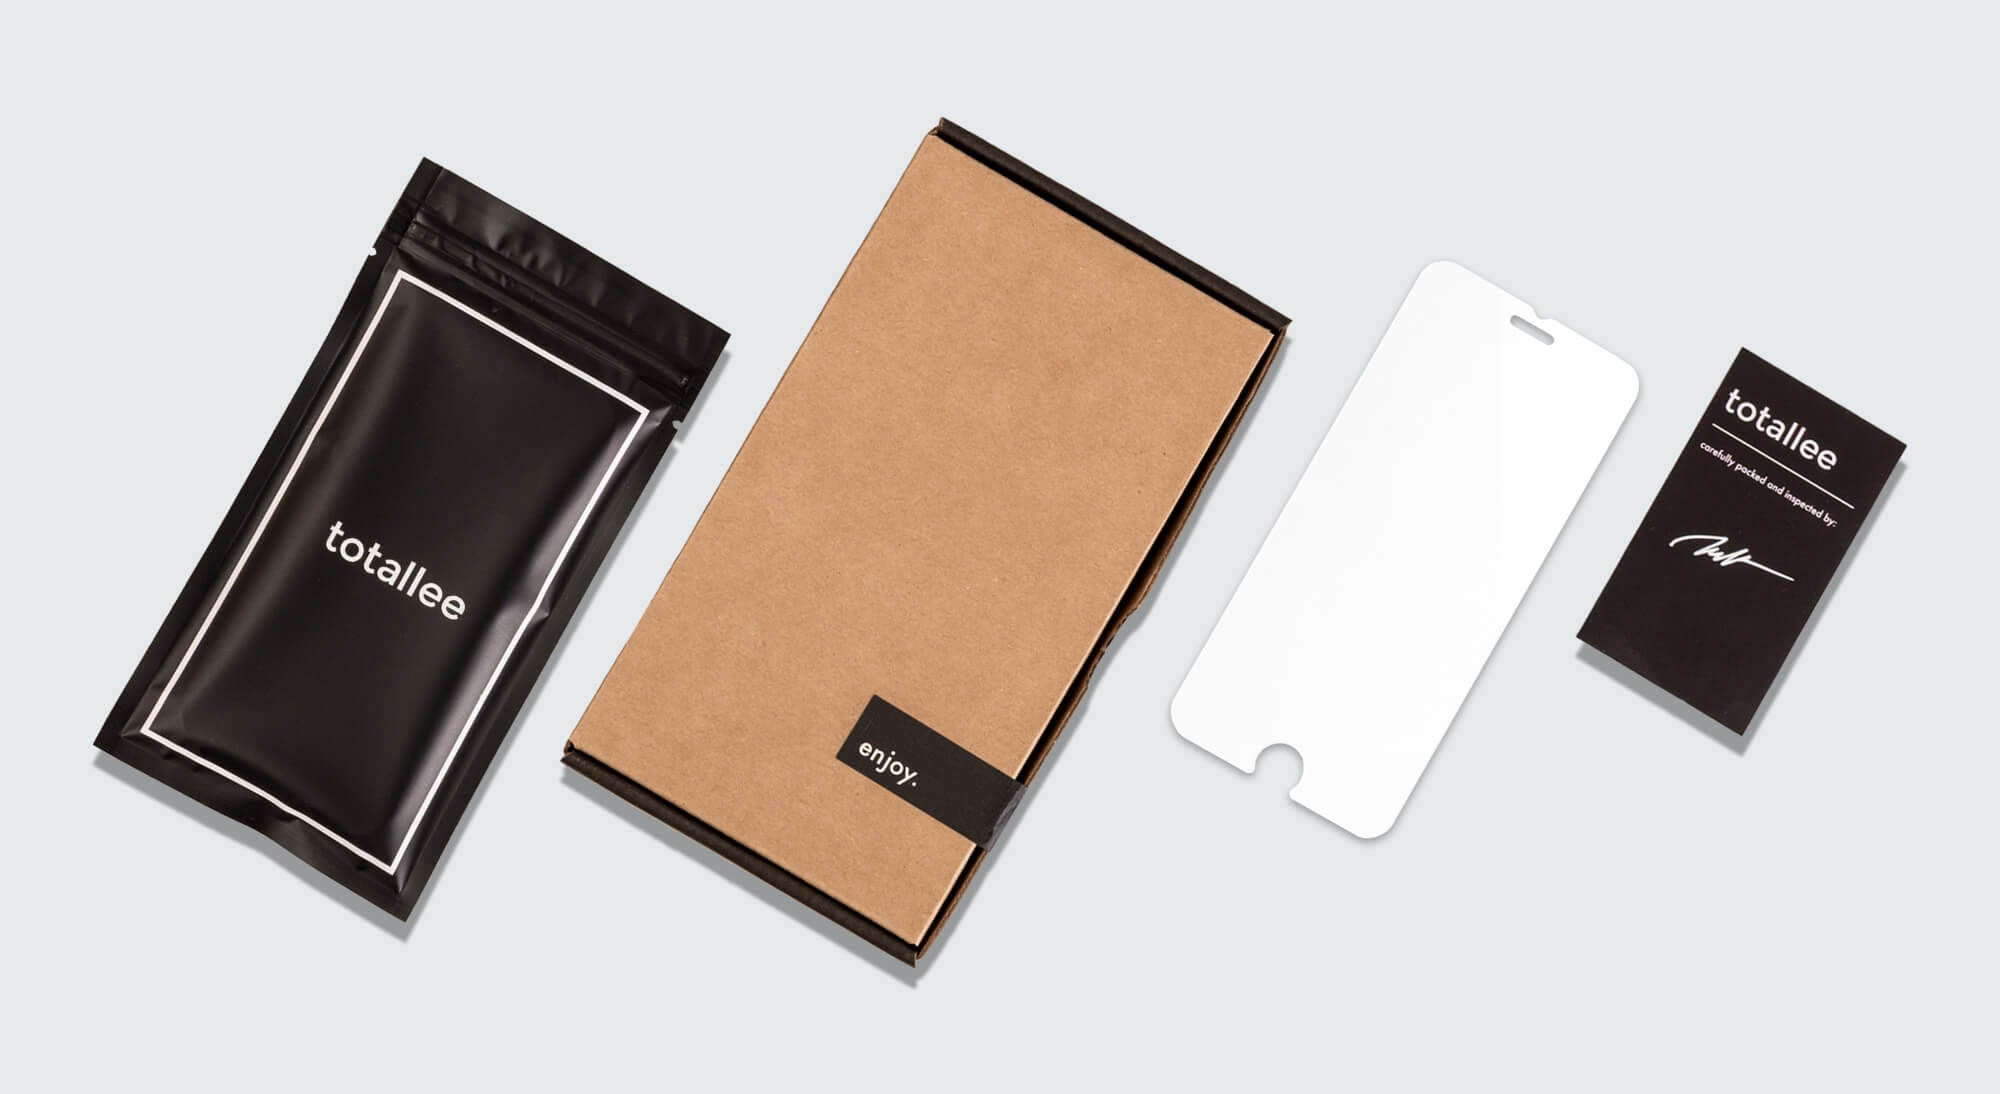 totallee's tempered glass iphone screen protector packaging, including a kraft box, black bag, black hand signed warranty card and screen protector.